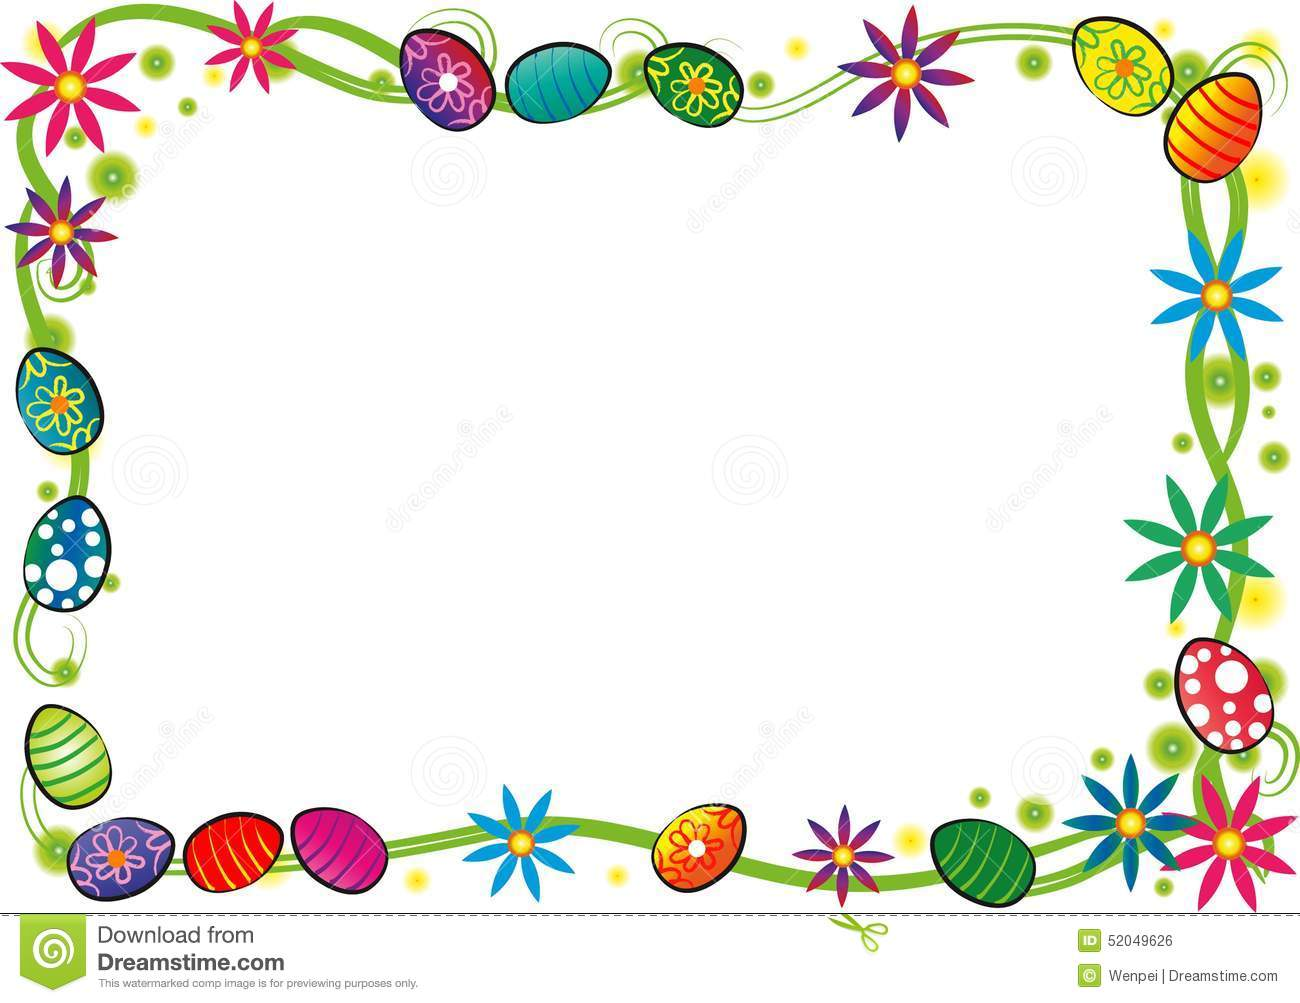 Happy Easter Border Royalty Free Stock Image - Image: 23058506